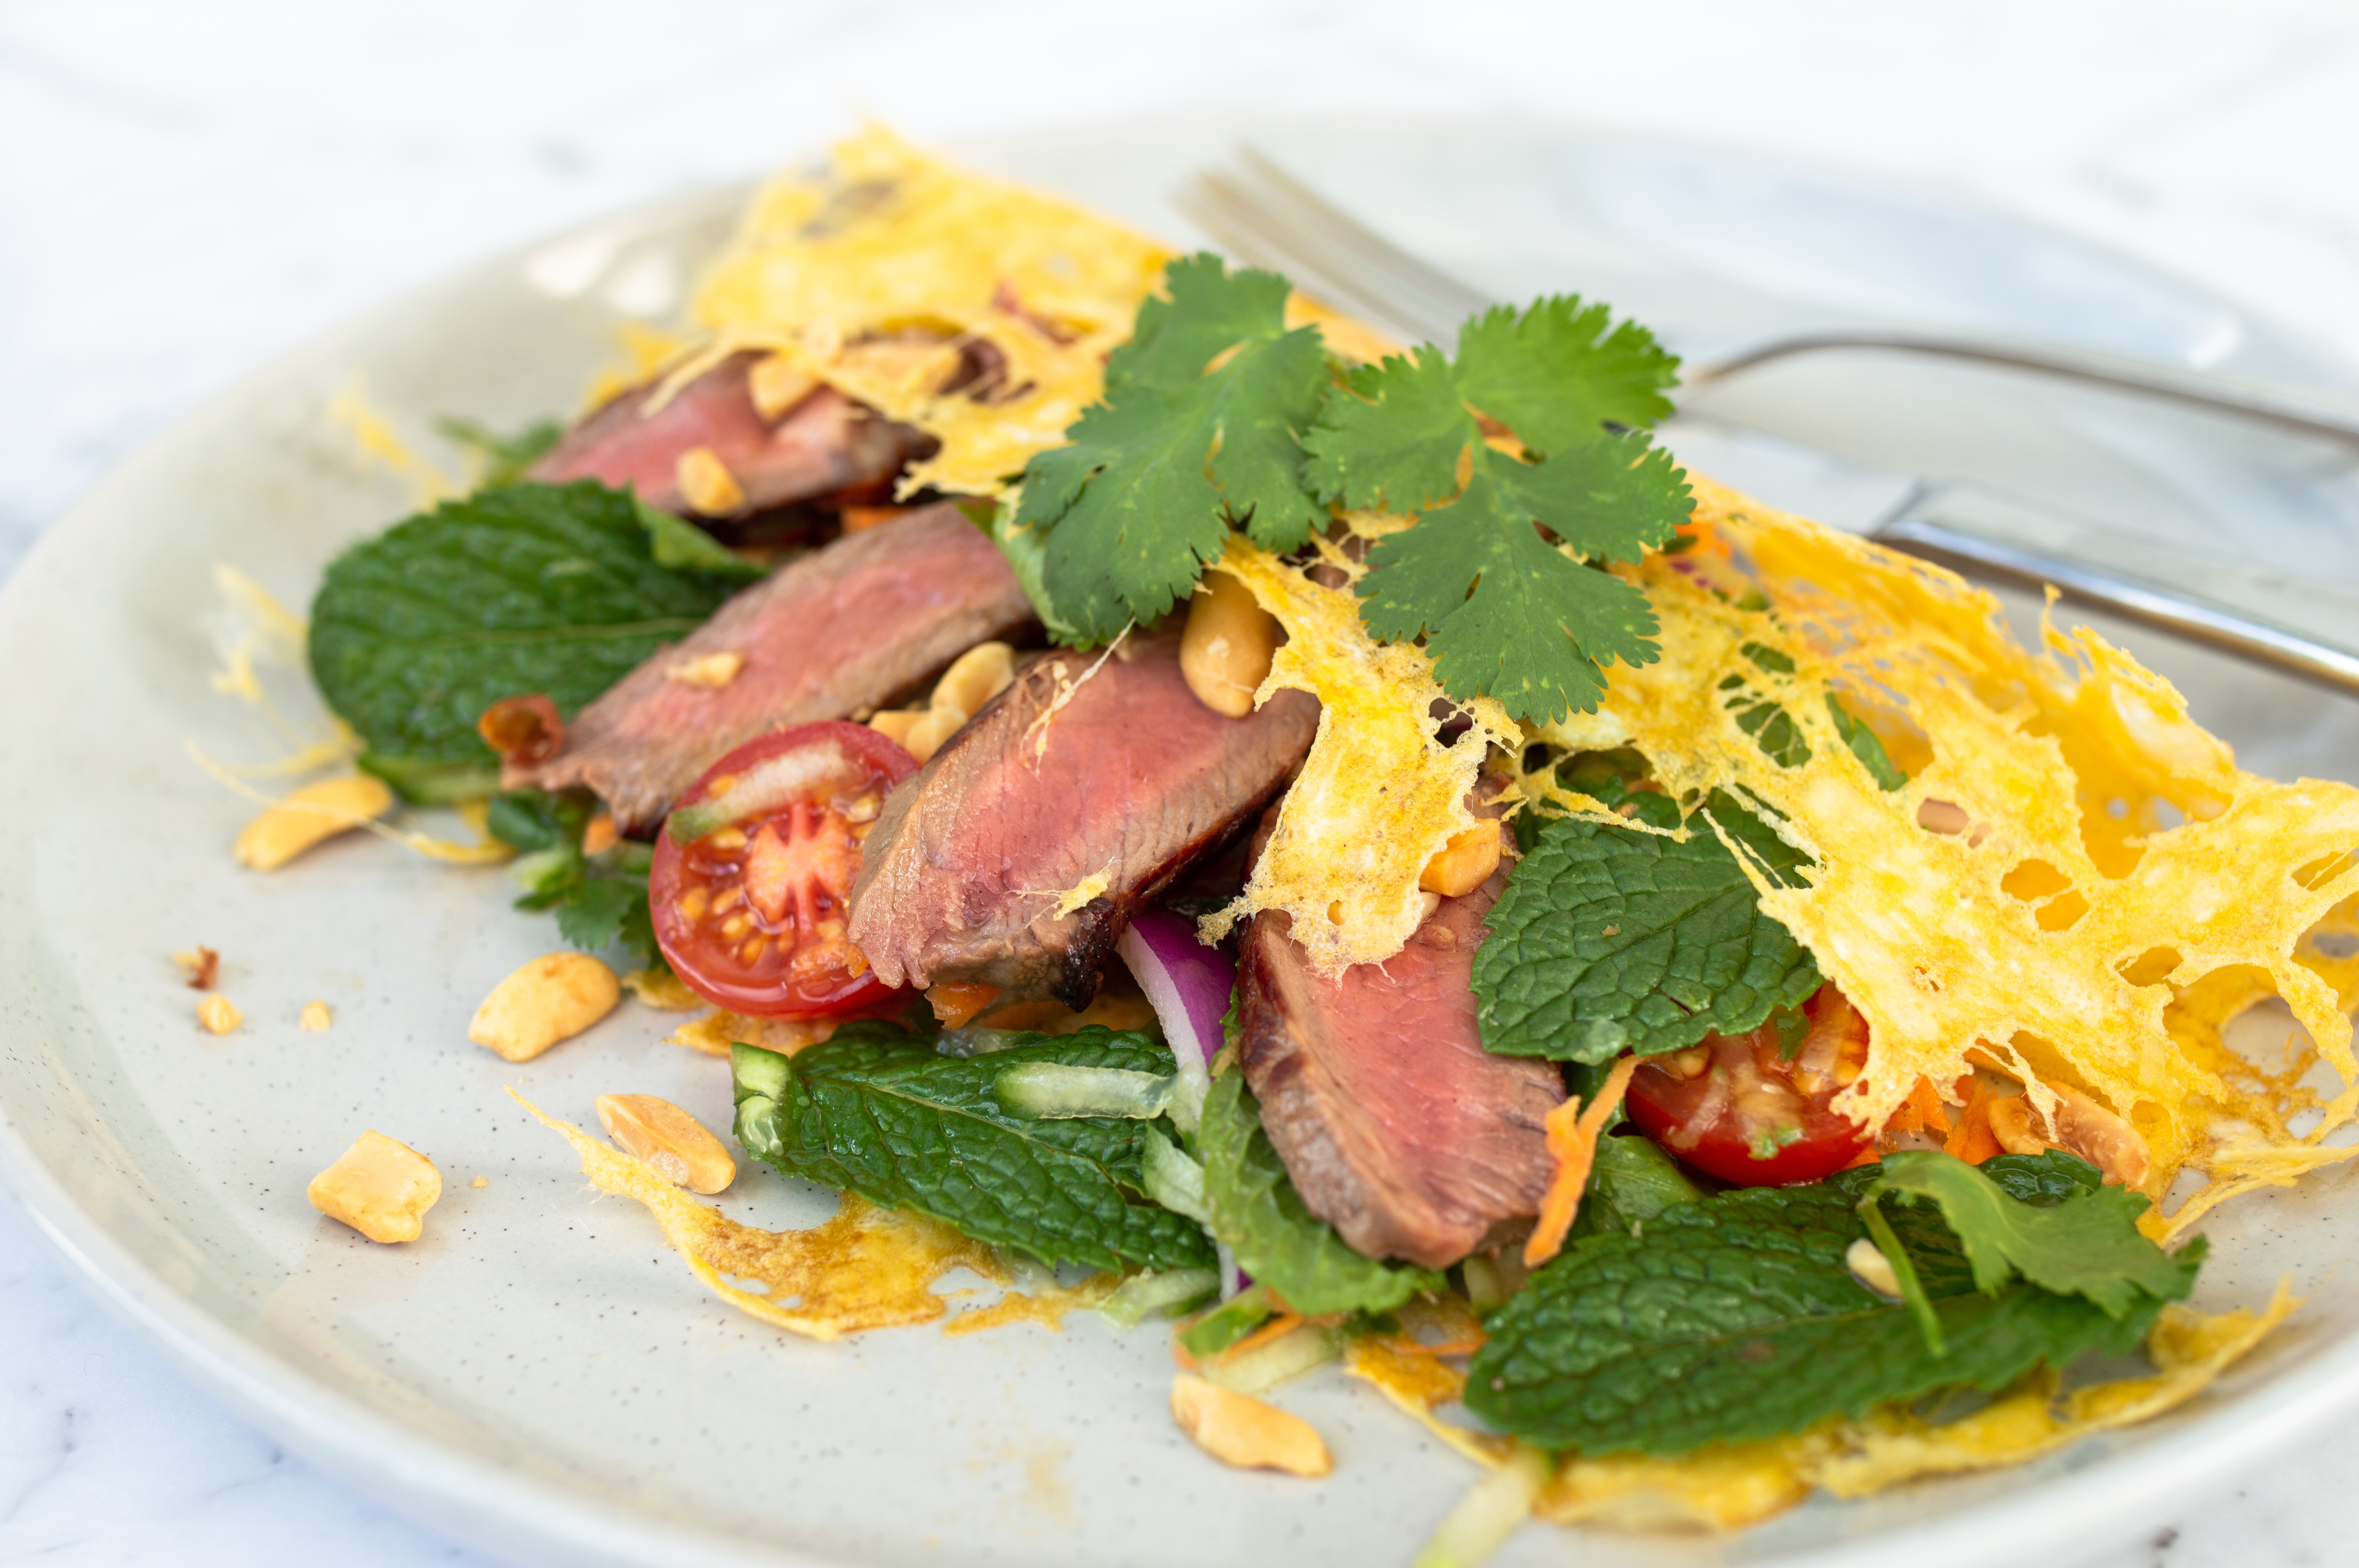 Thai beef salad with egg nest